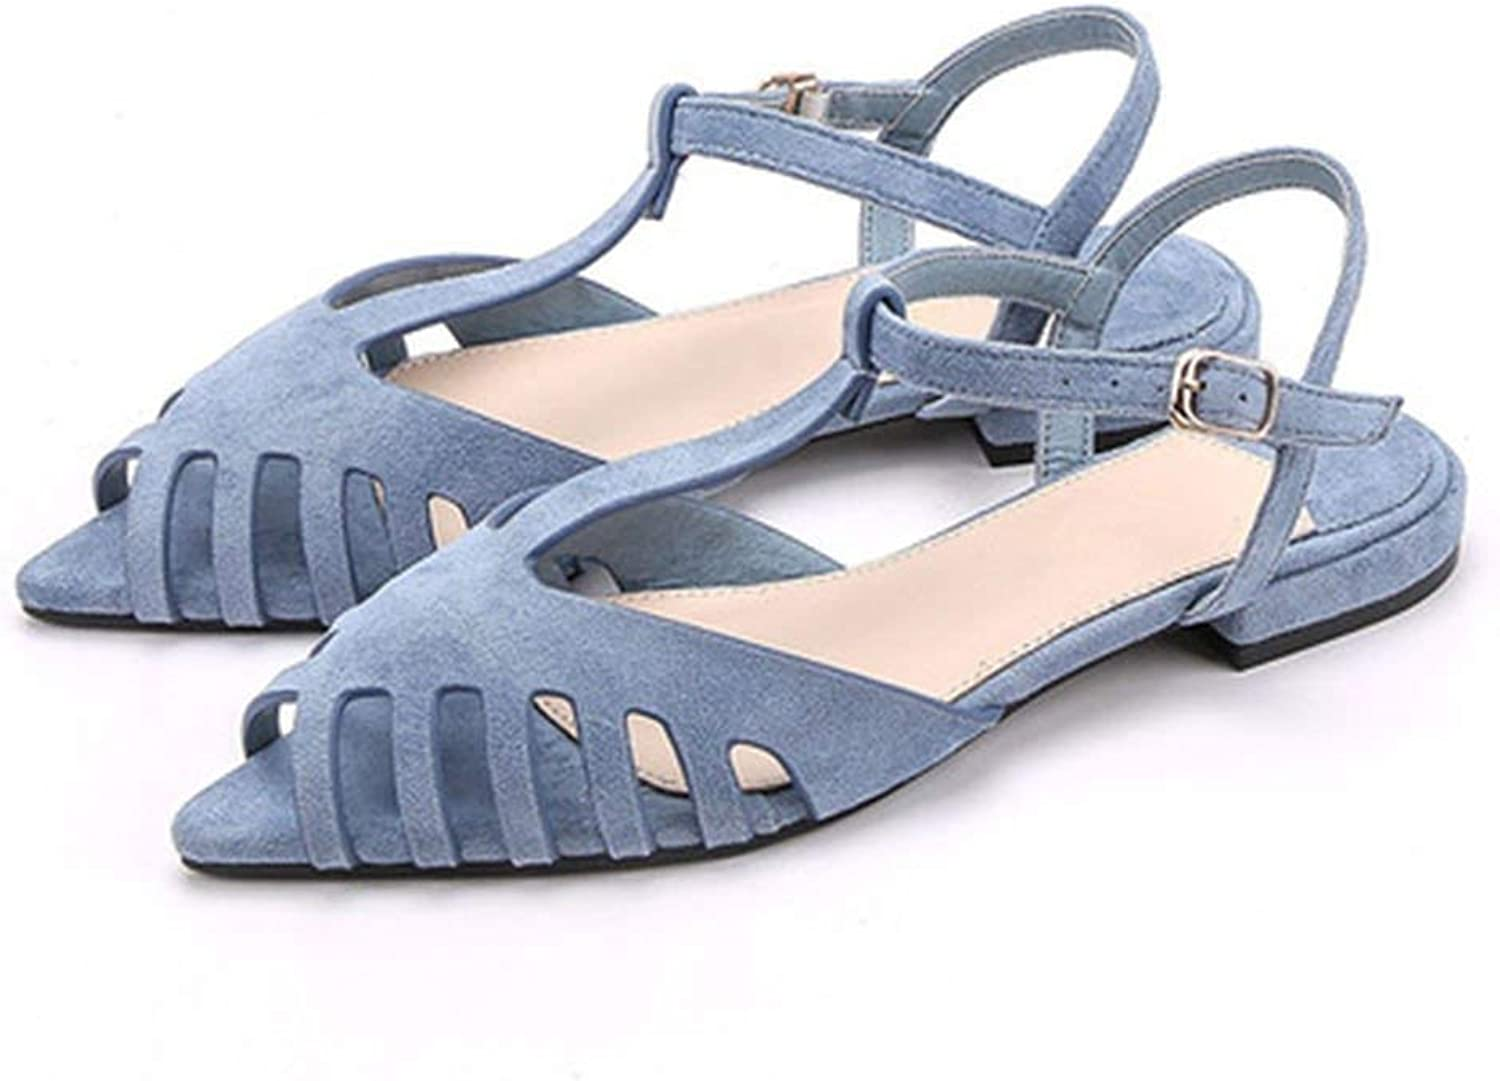 Dream-Cabin Flat Sandals Women Pointed Toe Summer Beach Sandals Women Soft Solid Sandals shoes